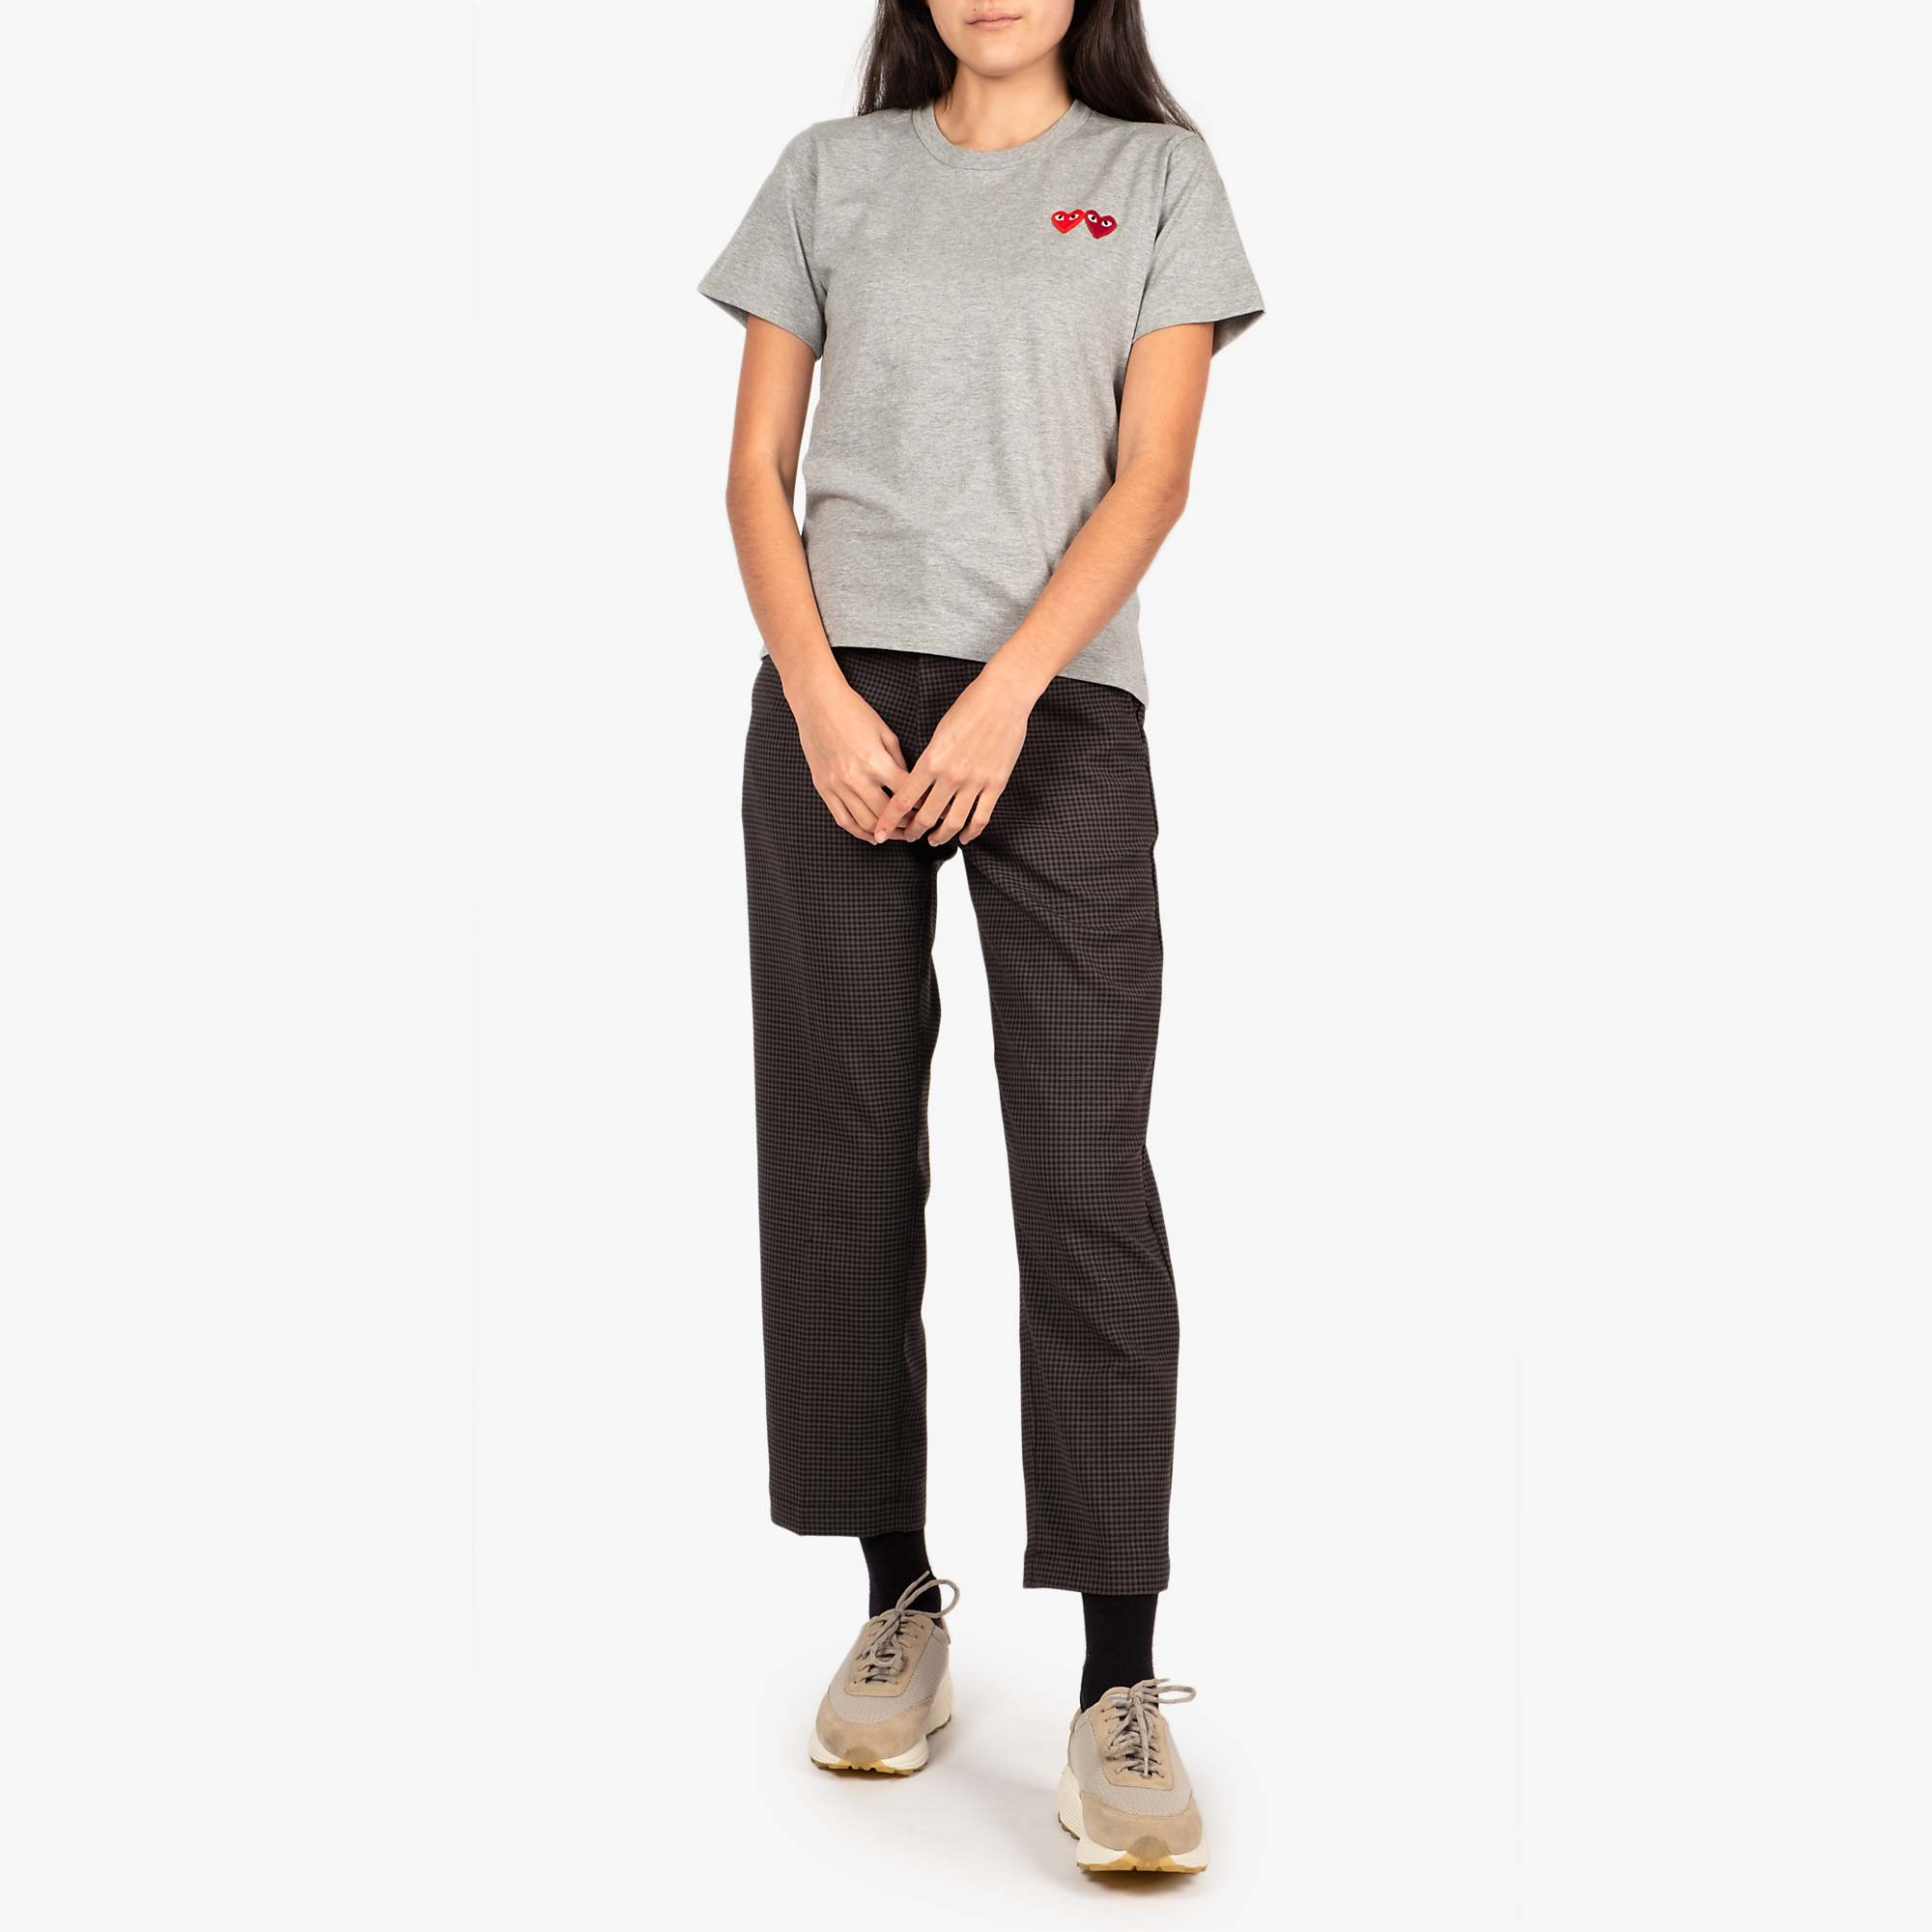 Comme des Garcons - PLAY Womens Double Heart Emblem Tee - Grey 3